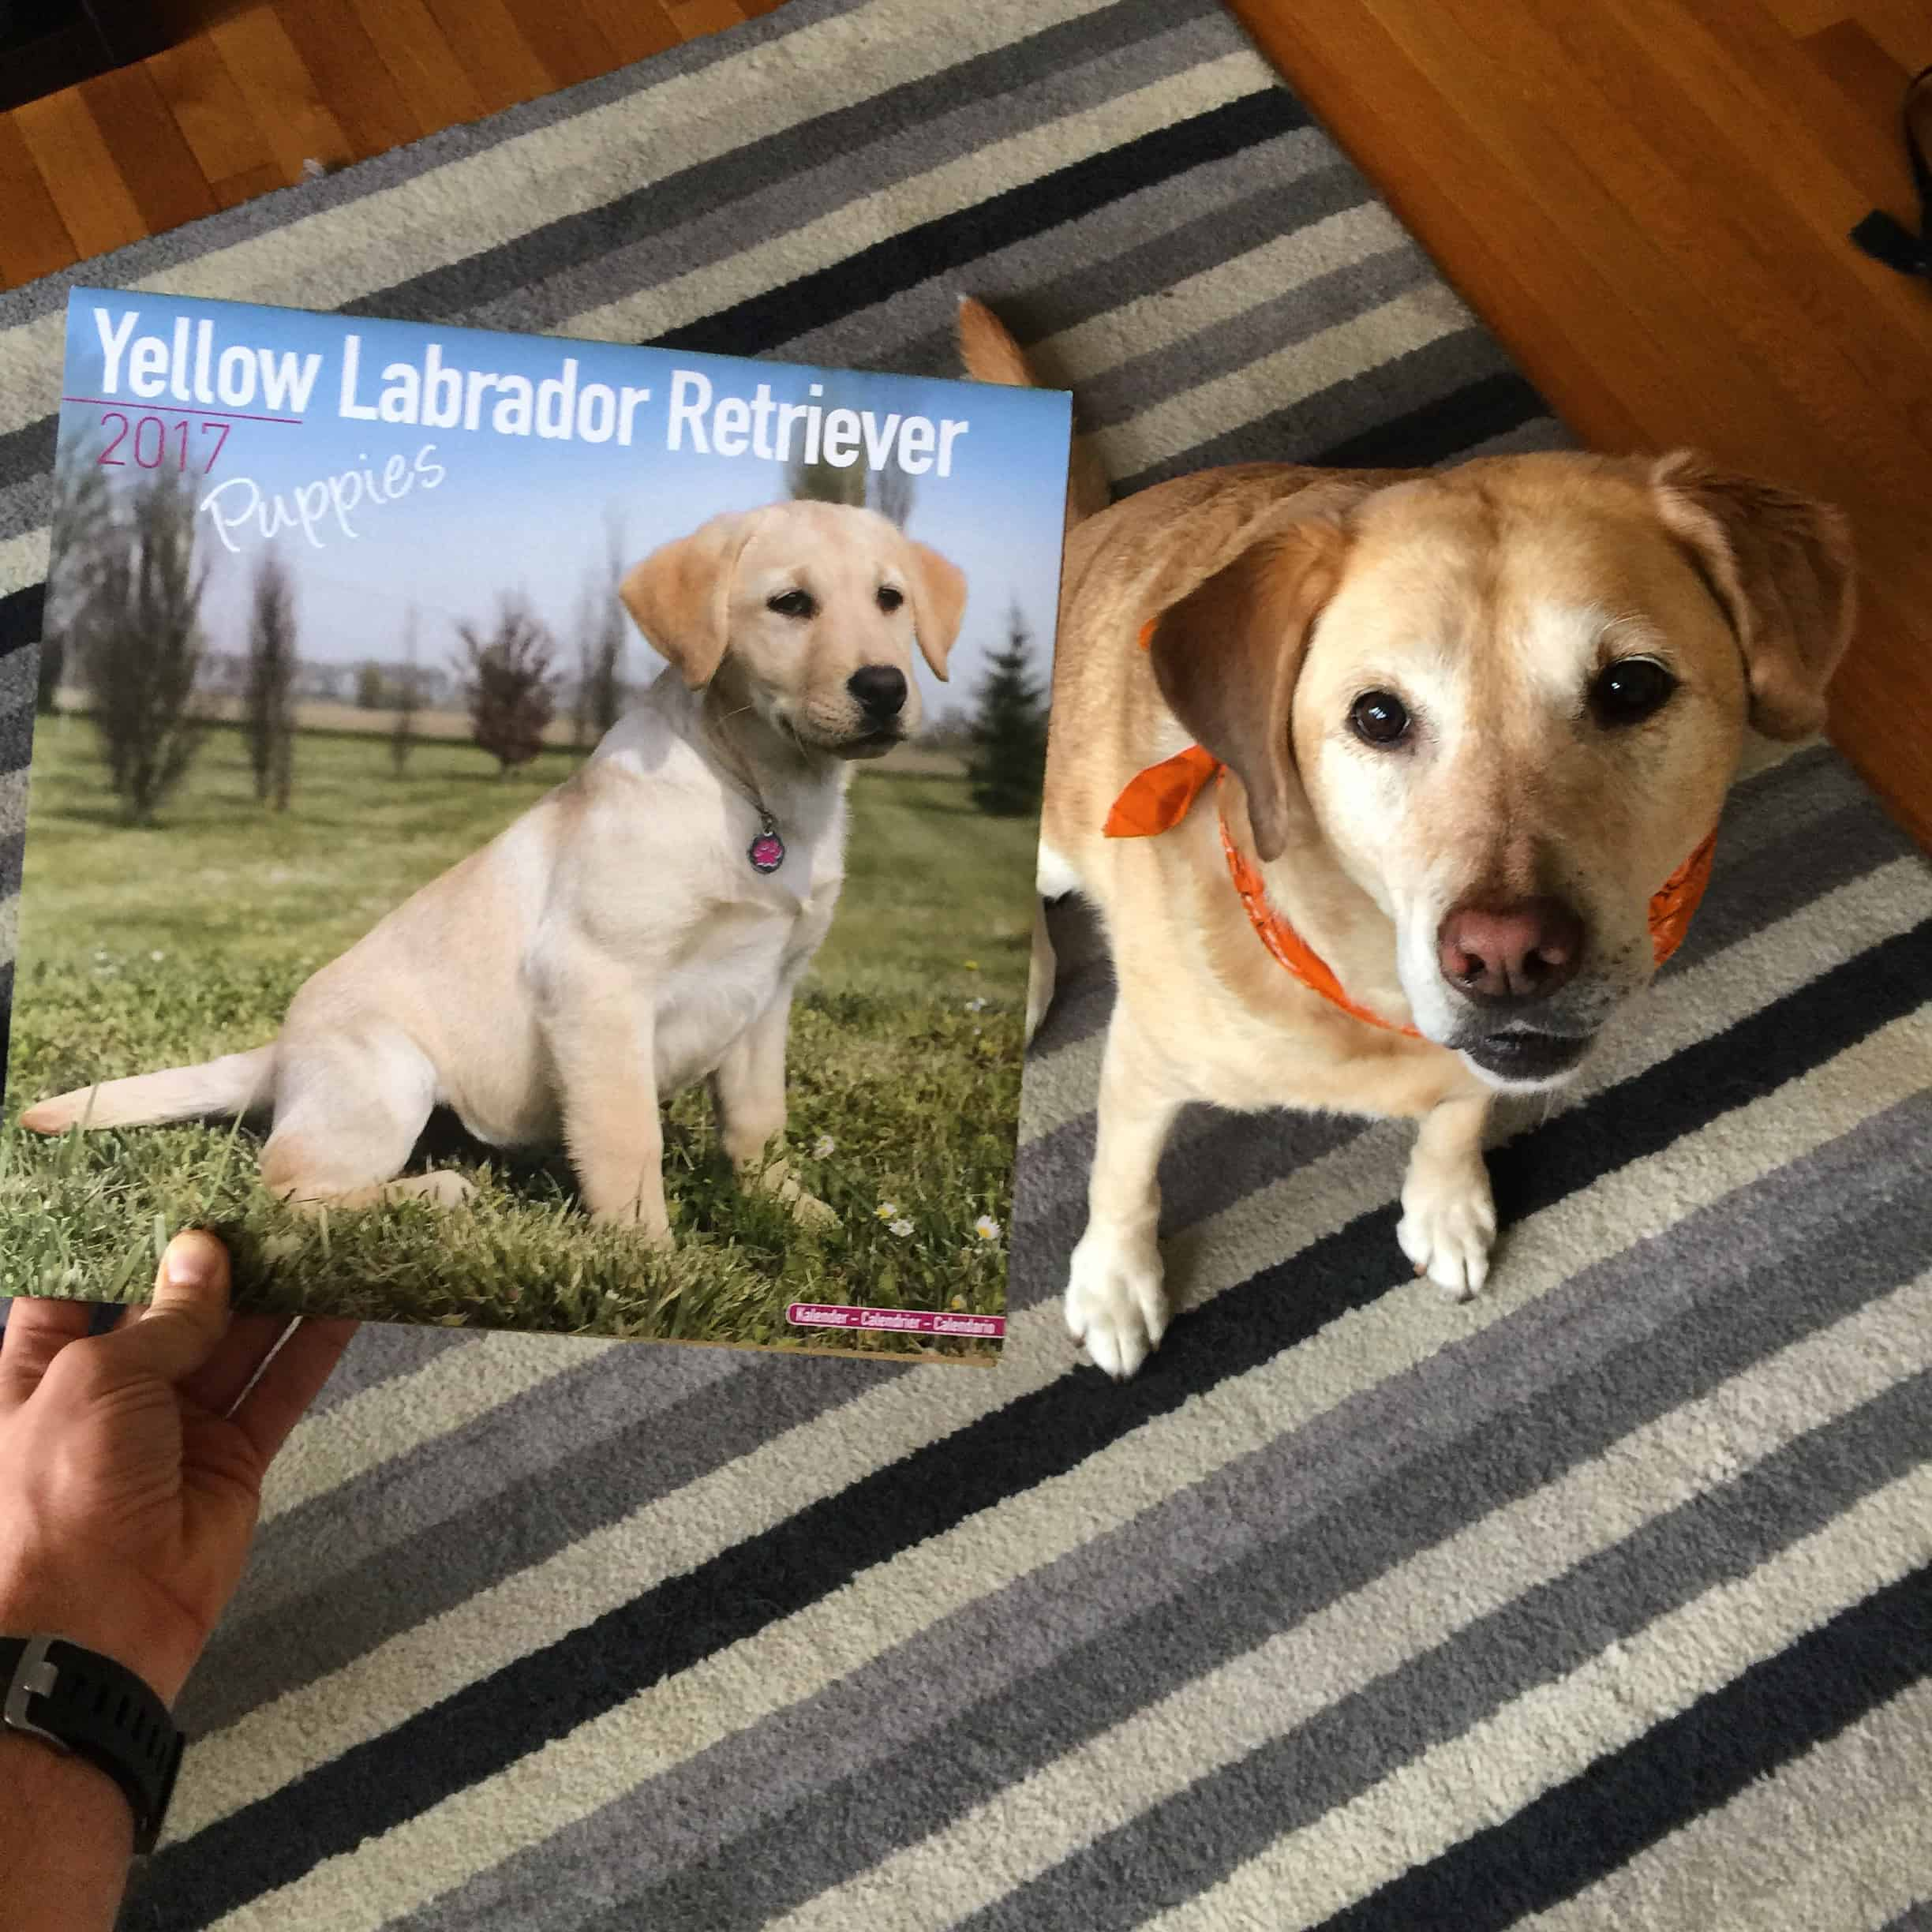 FOUR YEARS of yellow lab calendars! #mollyriscica #yellowlabradorcalendar #labsofinstagram #labs #labsofportland #labstagram #labradorable #labradorretriever #mollythedog #labradors #labradoroftheday #retrievers #retrieversgram #talesoflabs #worldoflabs #labradoroftheday #thelablove_feature #justlabradors #labsofinsta #labs_of_insta #labradors4life #justlabradors #fab_labs_ #labslife #labradorsofinstagram #labrador_class